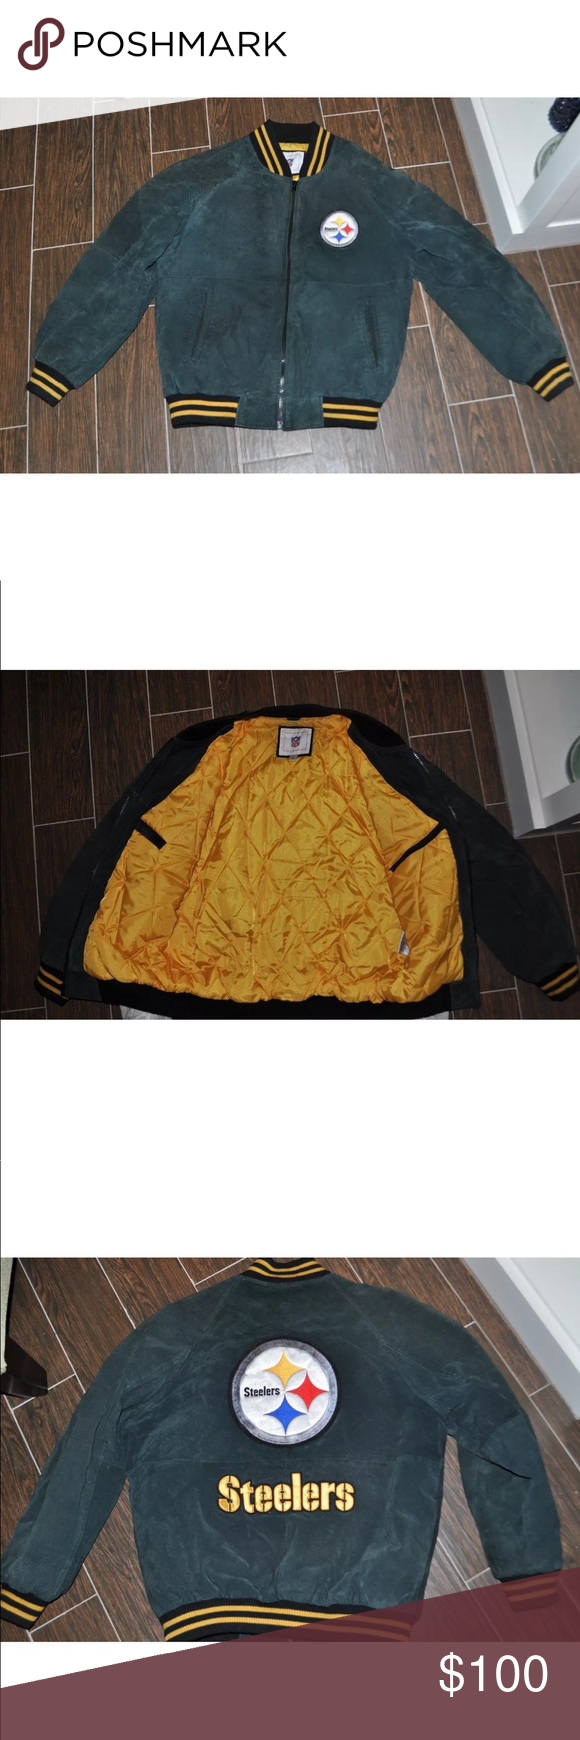 Pittsburgh Steelers leather jacket Jackets, Leather